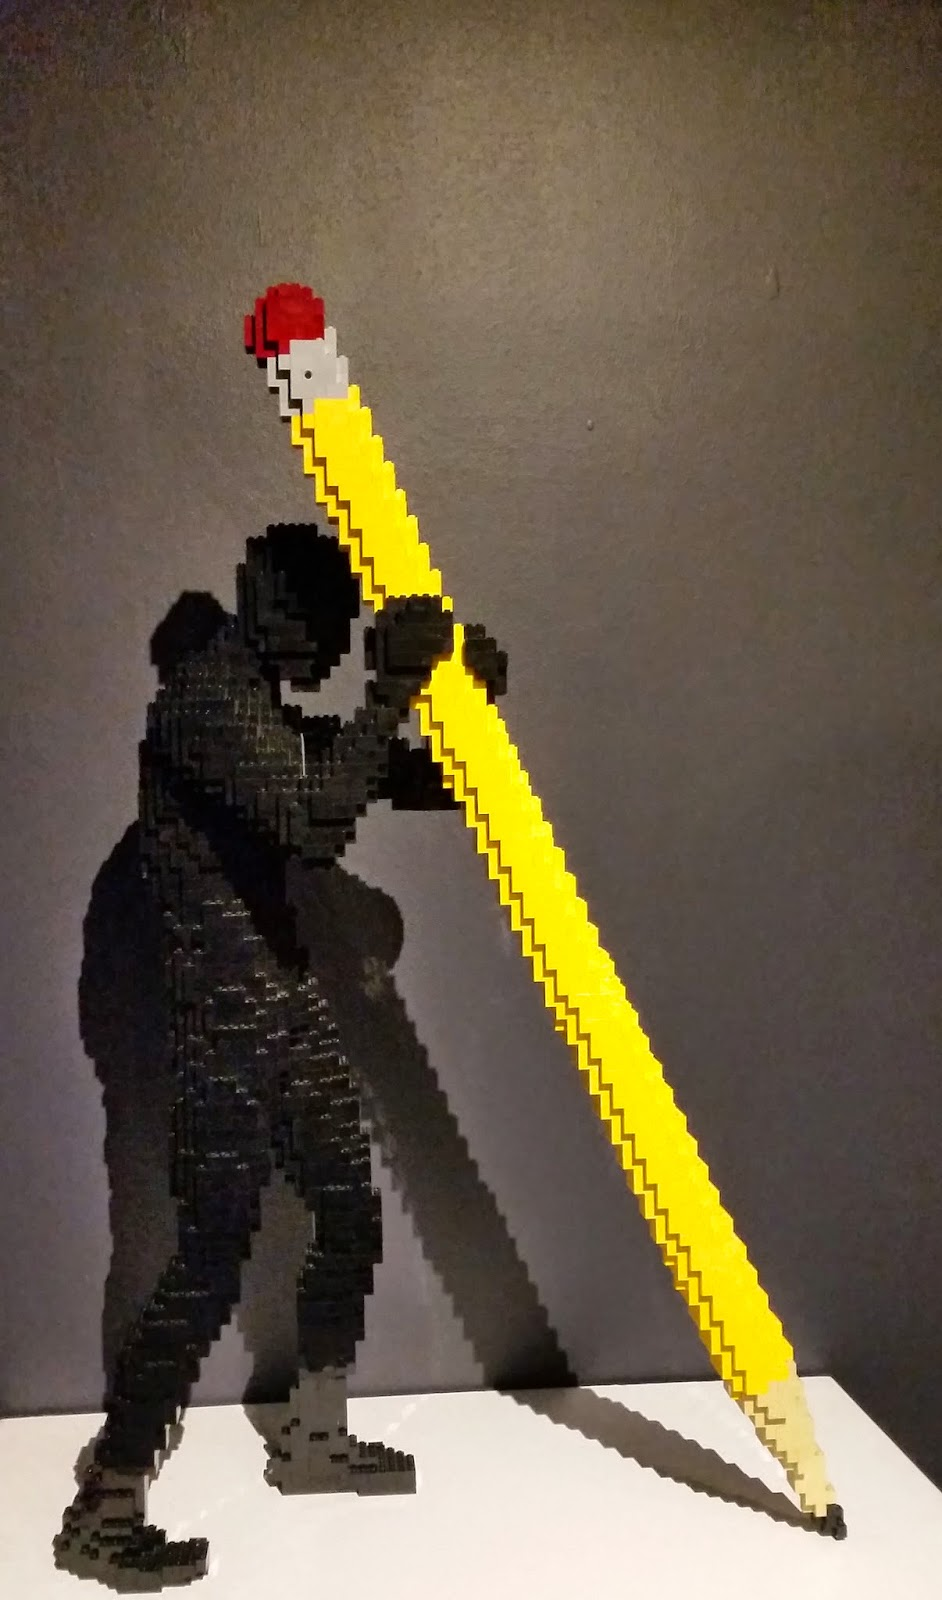 Lego Man and Pencil